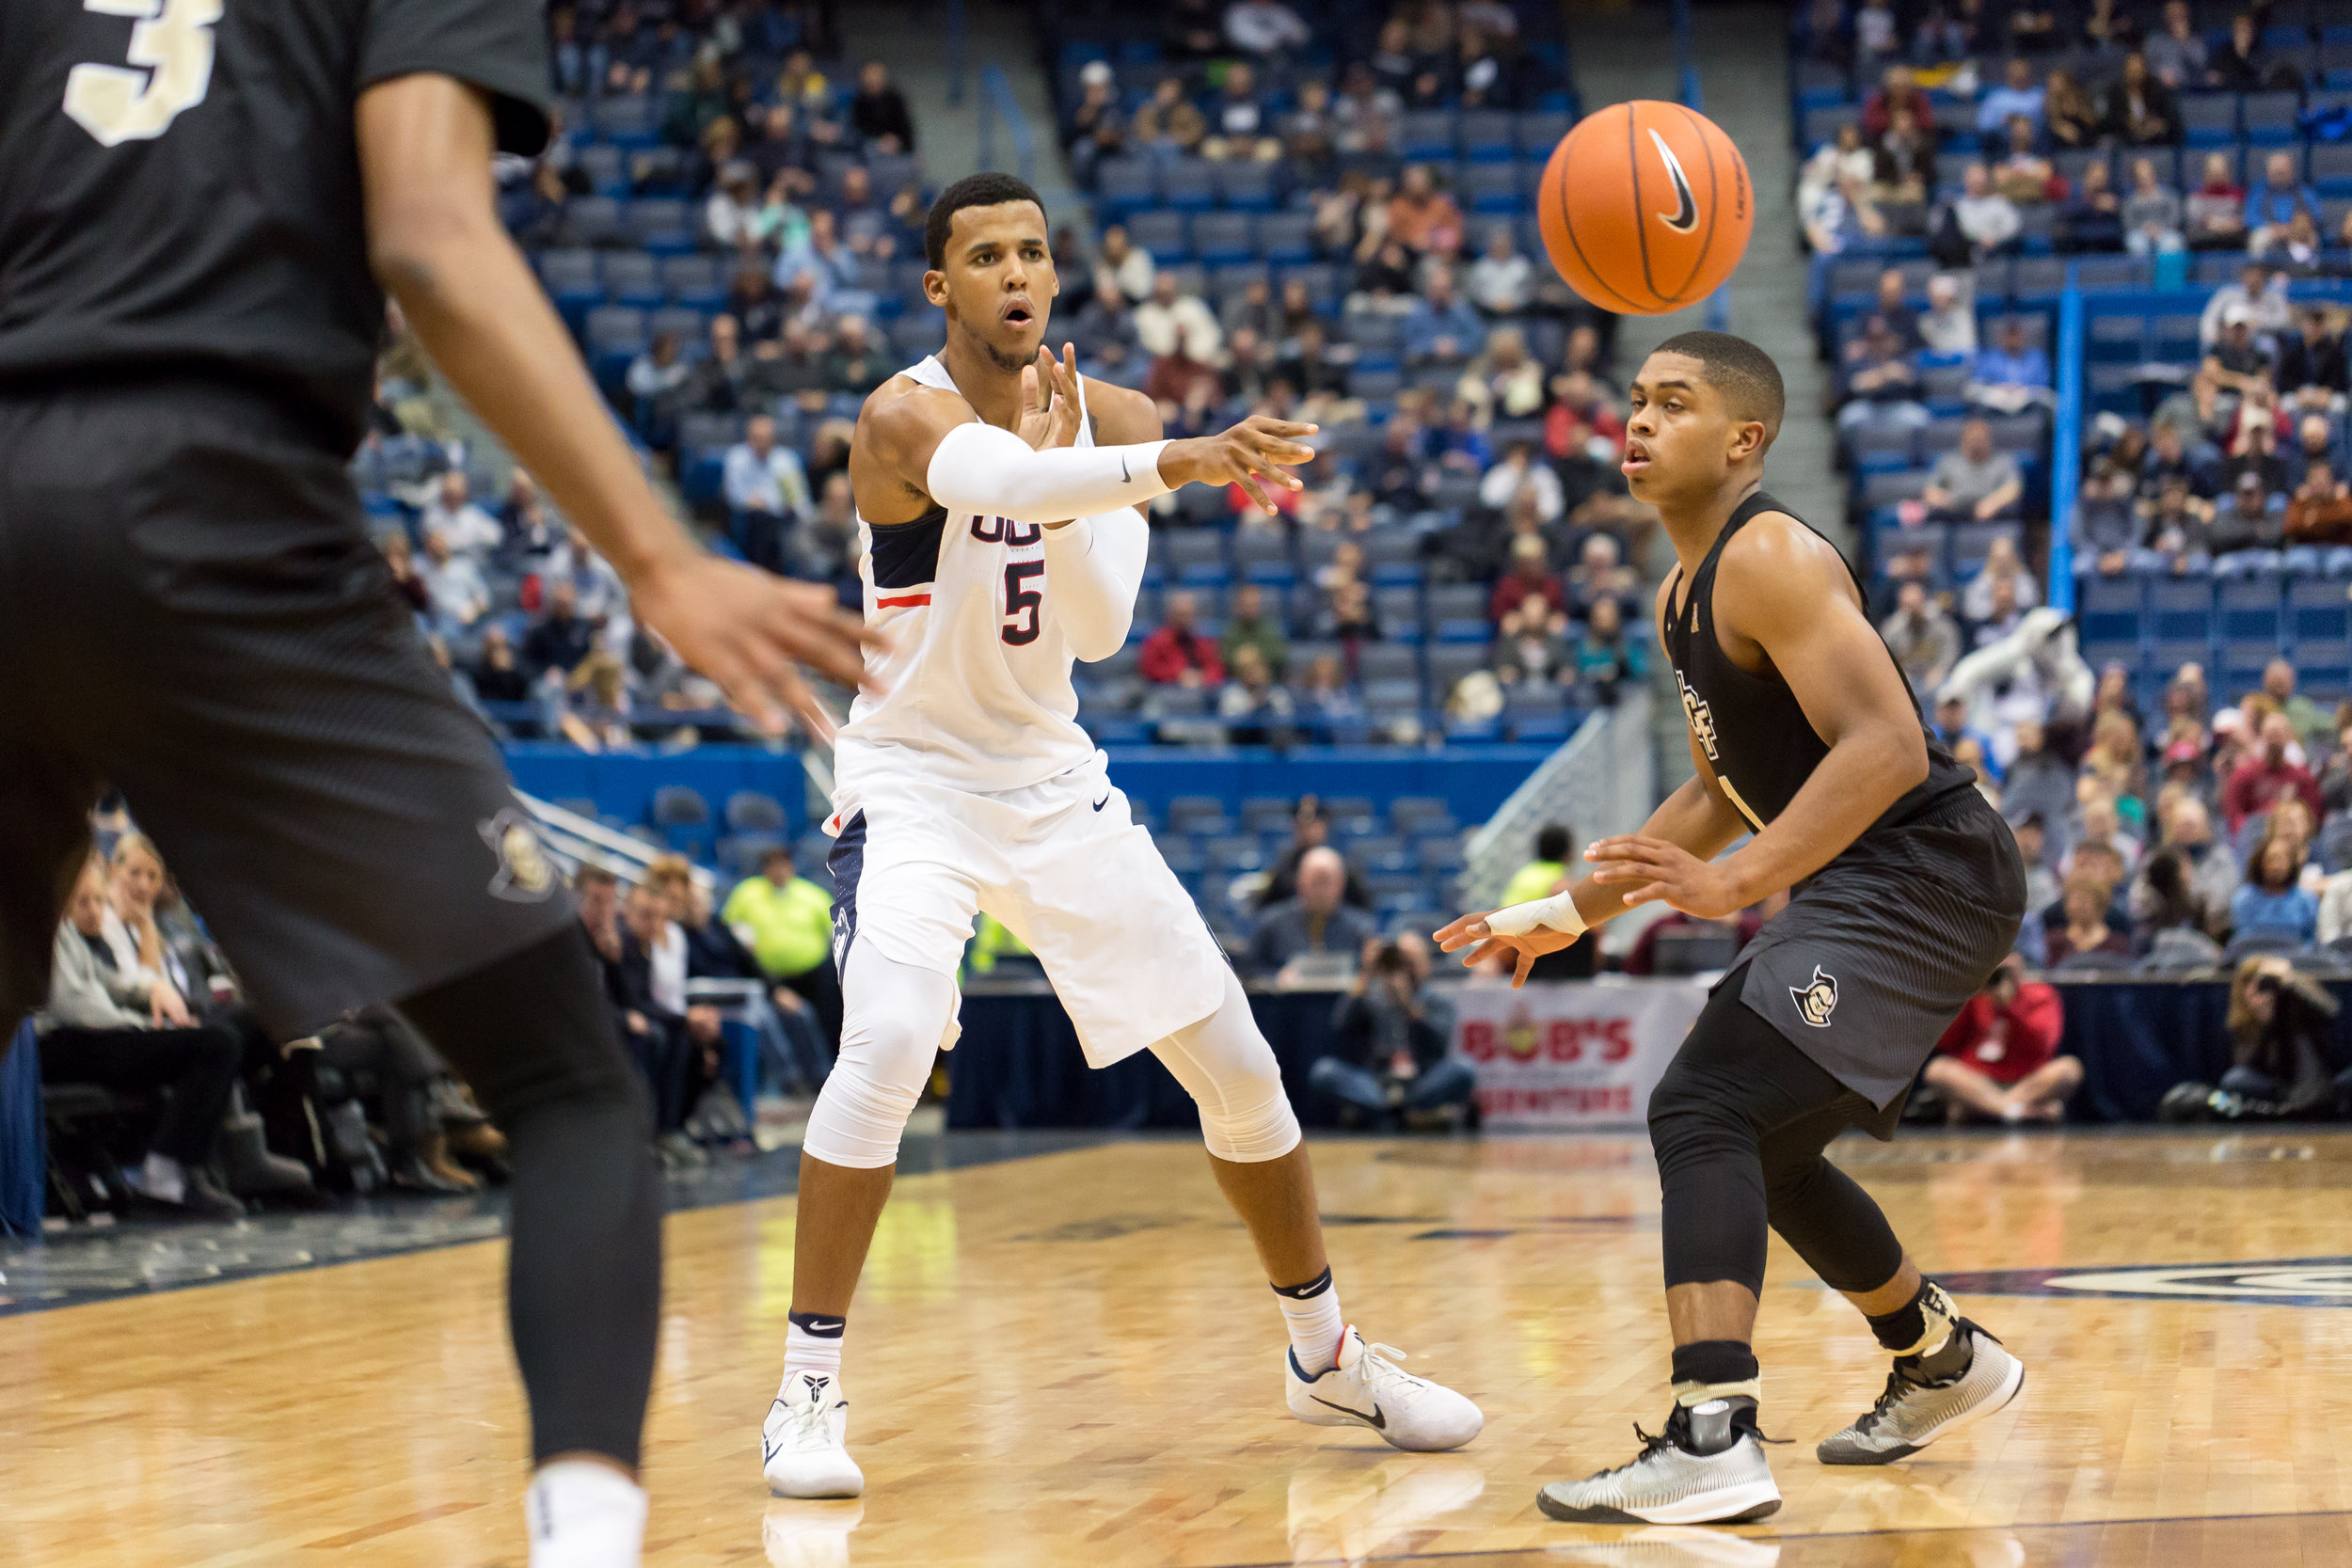 Freshman Vance Jackson makes a pass in UConn's 64-49 win over UCF at the XL Center on Jan. 8, 2017. (Tyler Benton/The Daily Campus)